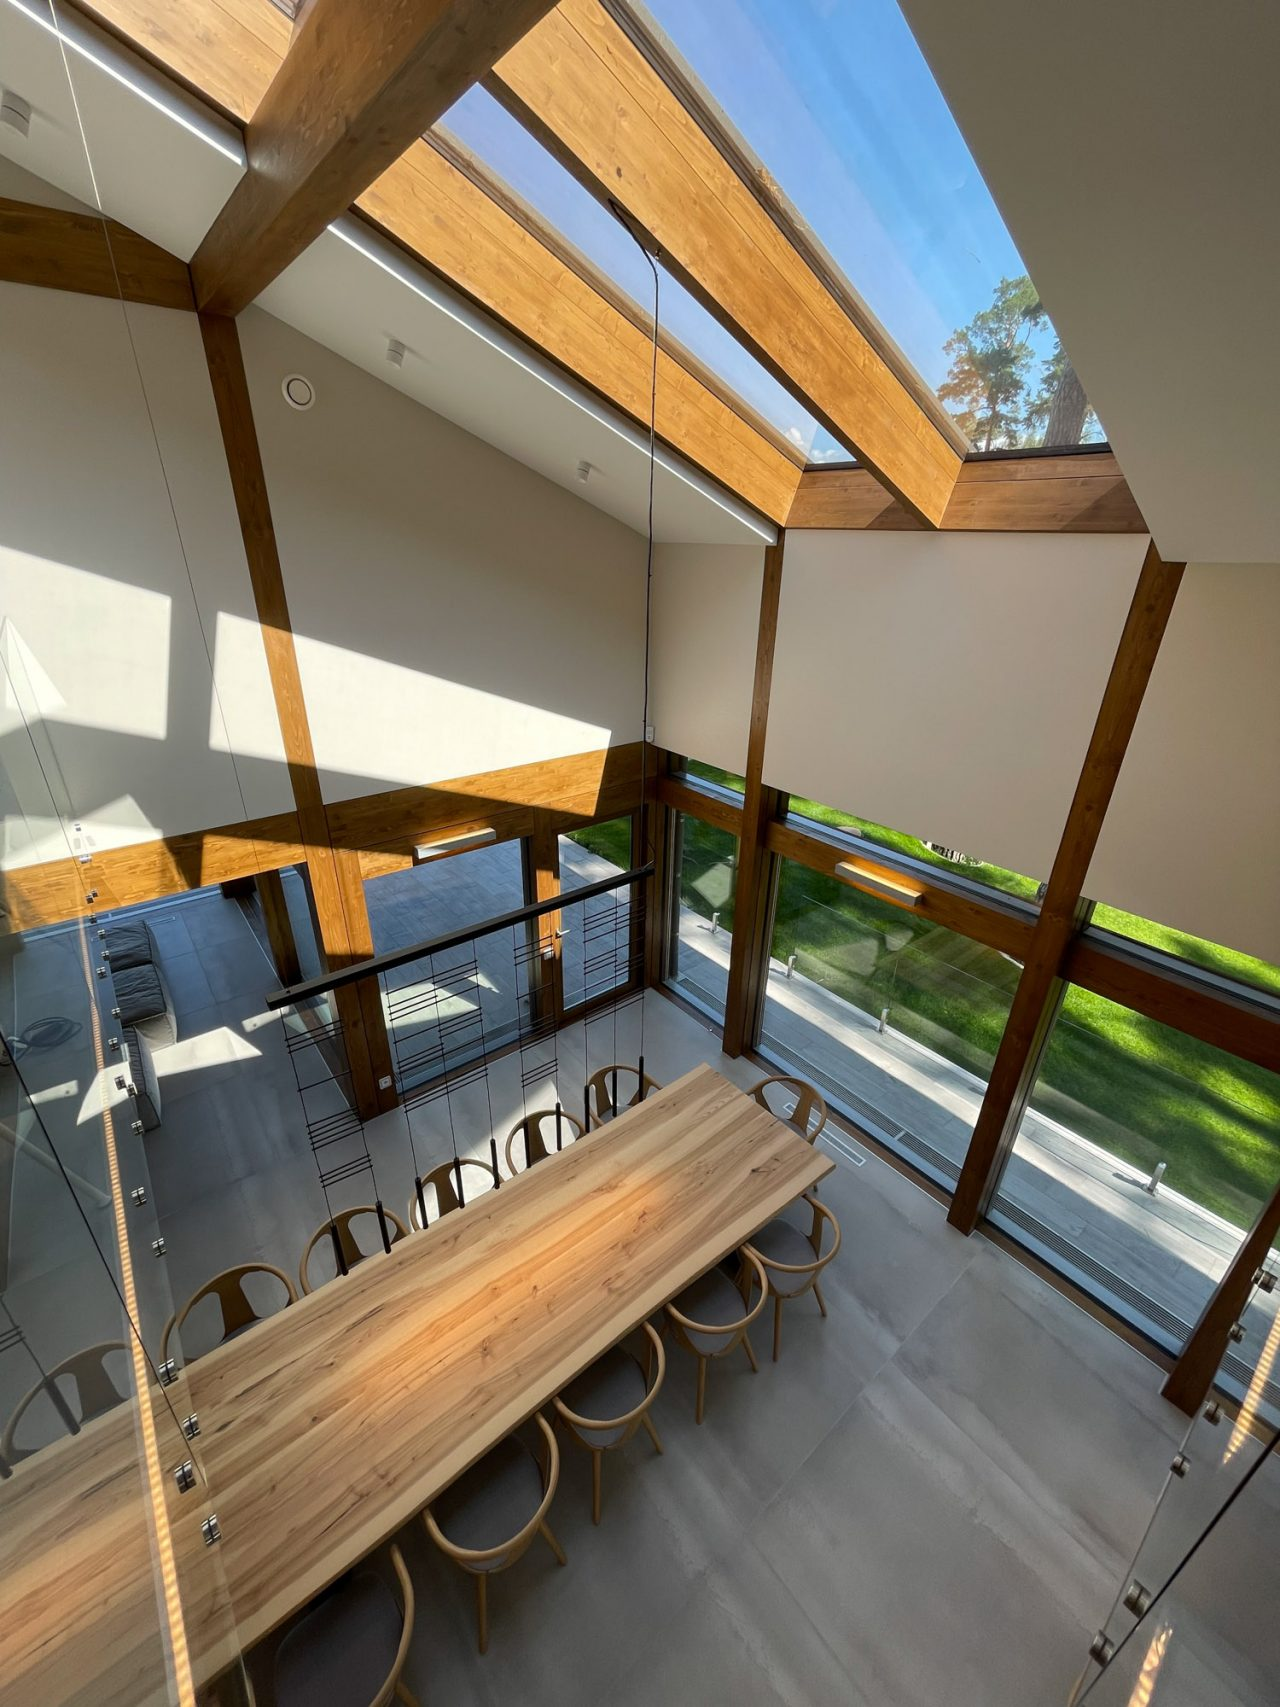 Hlass_house_KAGER - Hurii_17